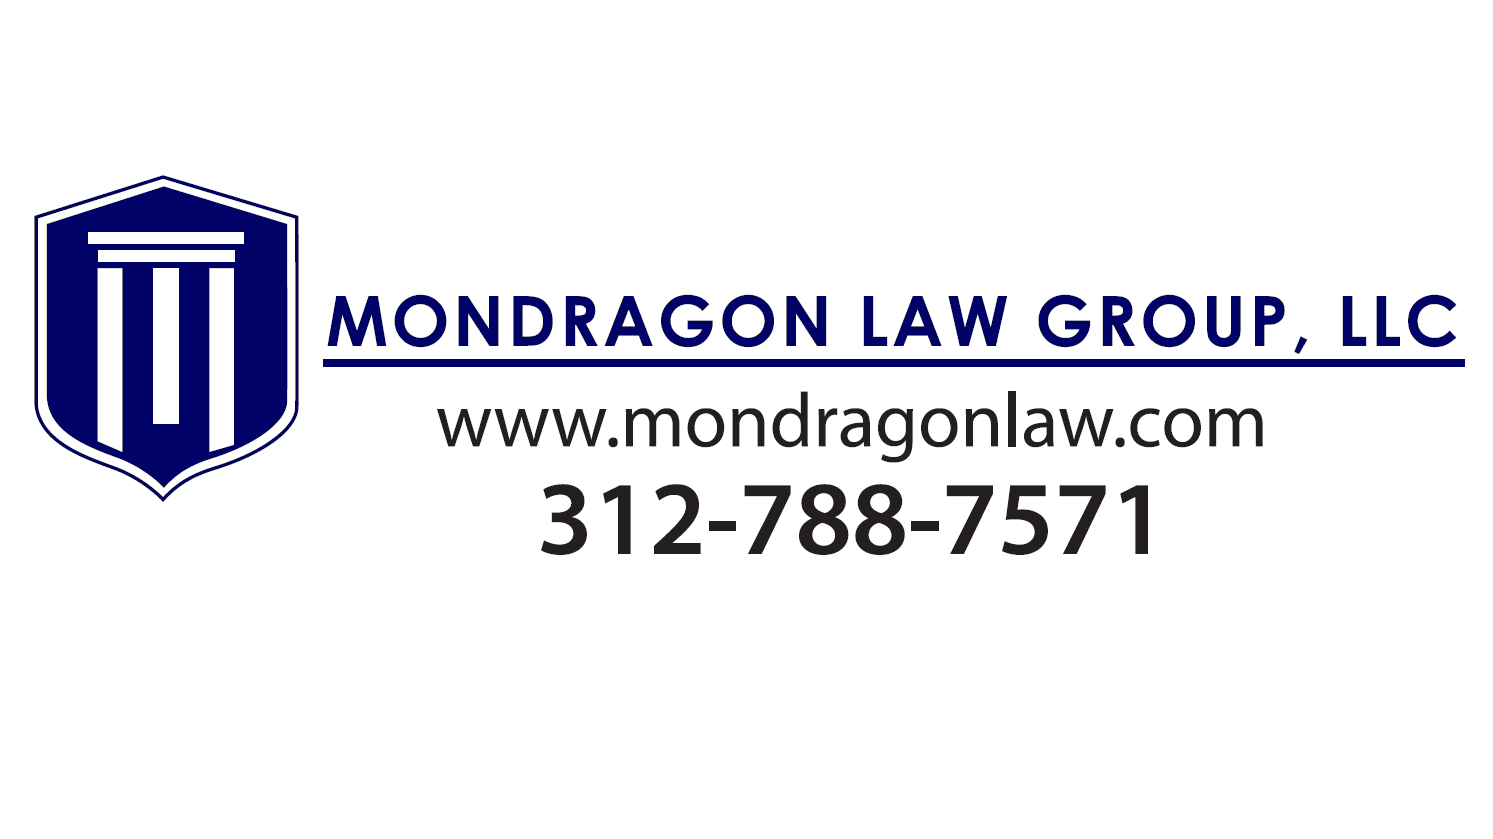 Mondragon Law Group, LLC